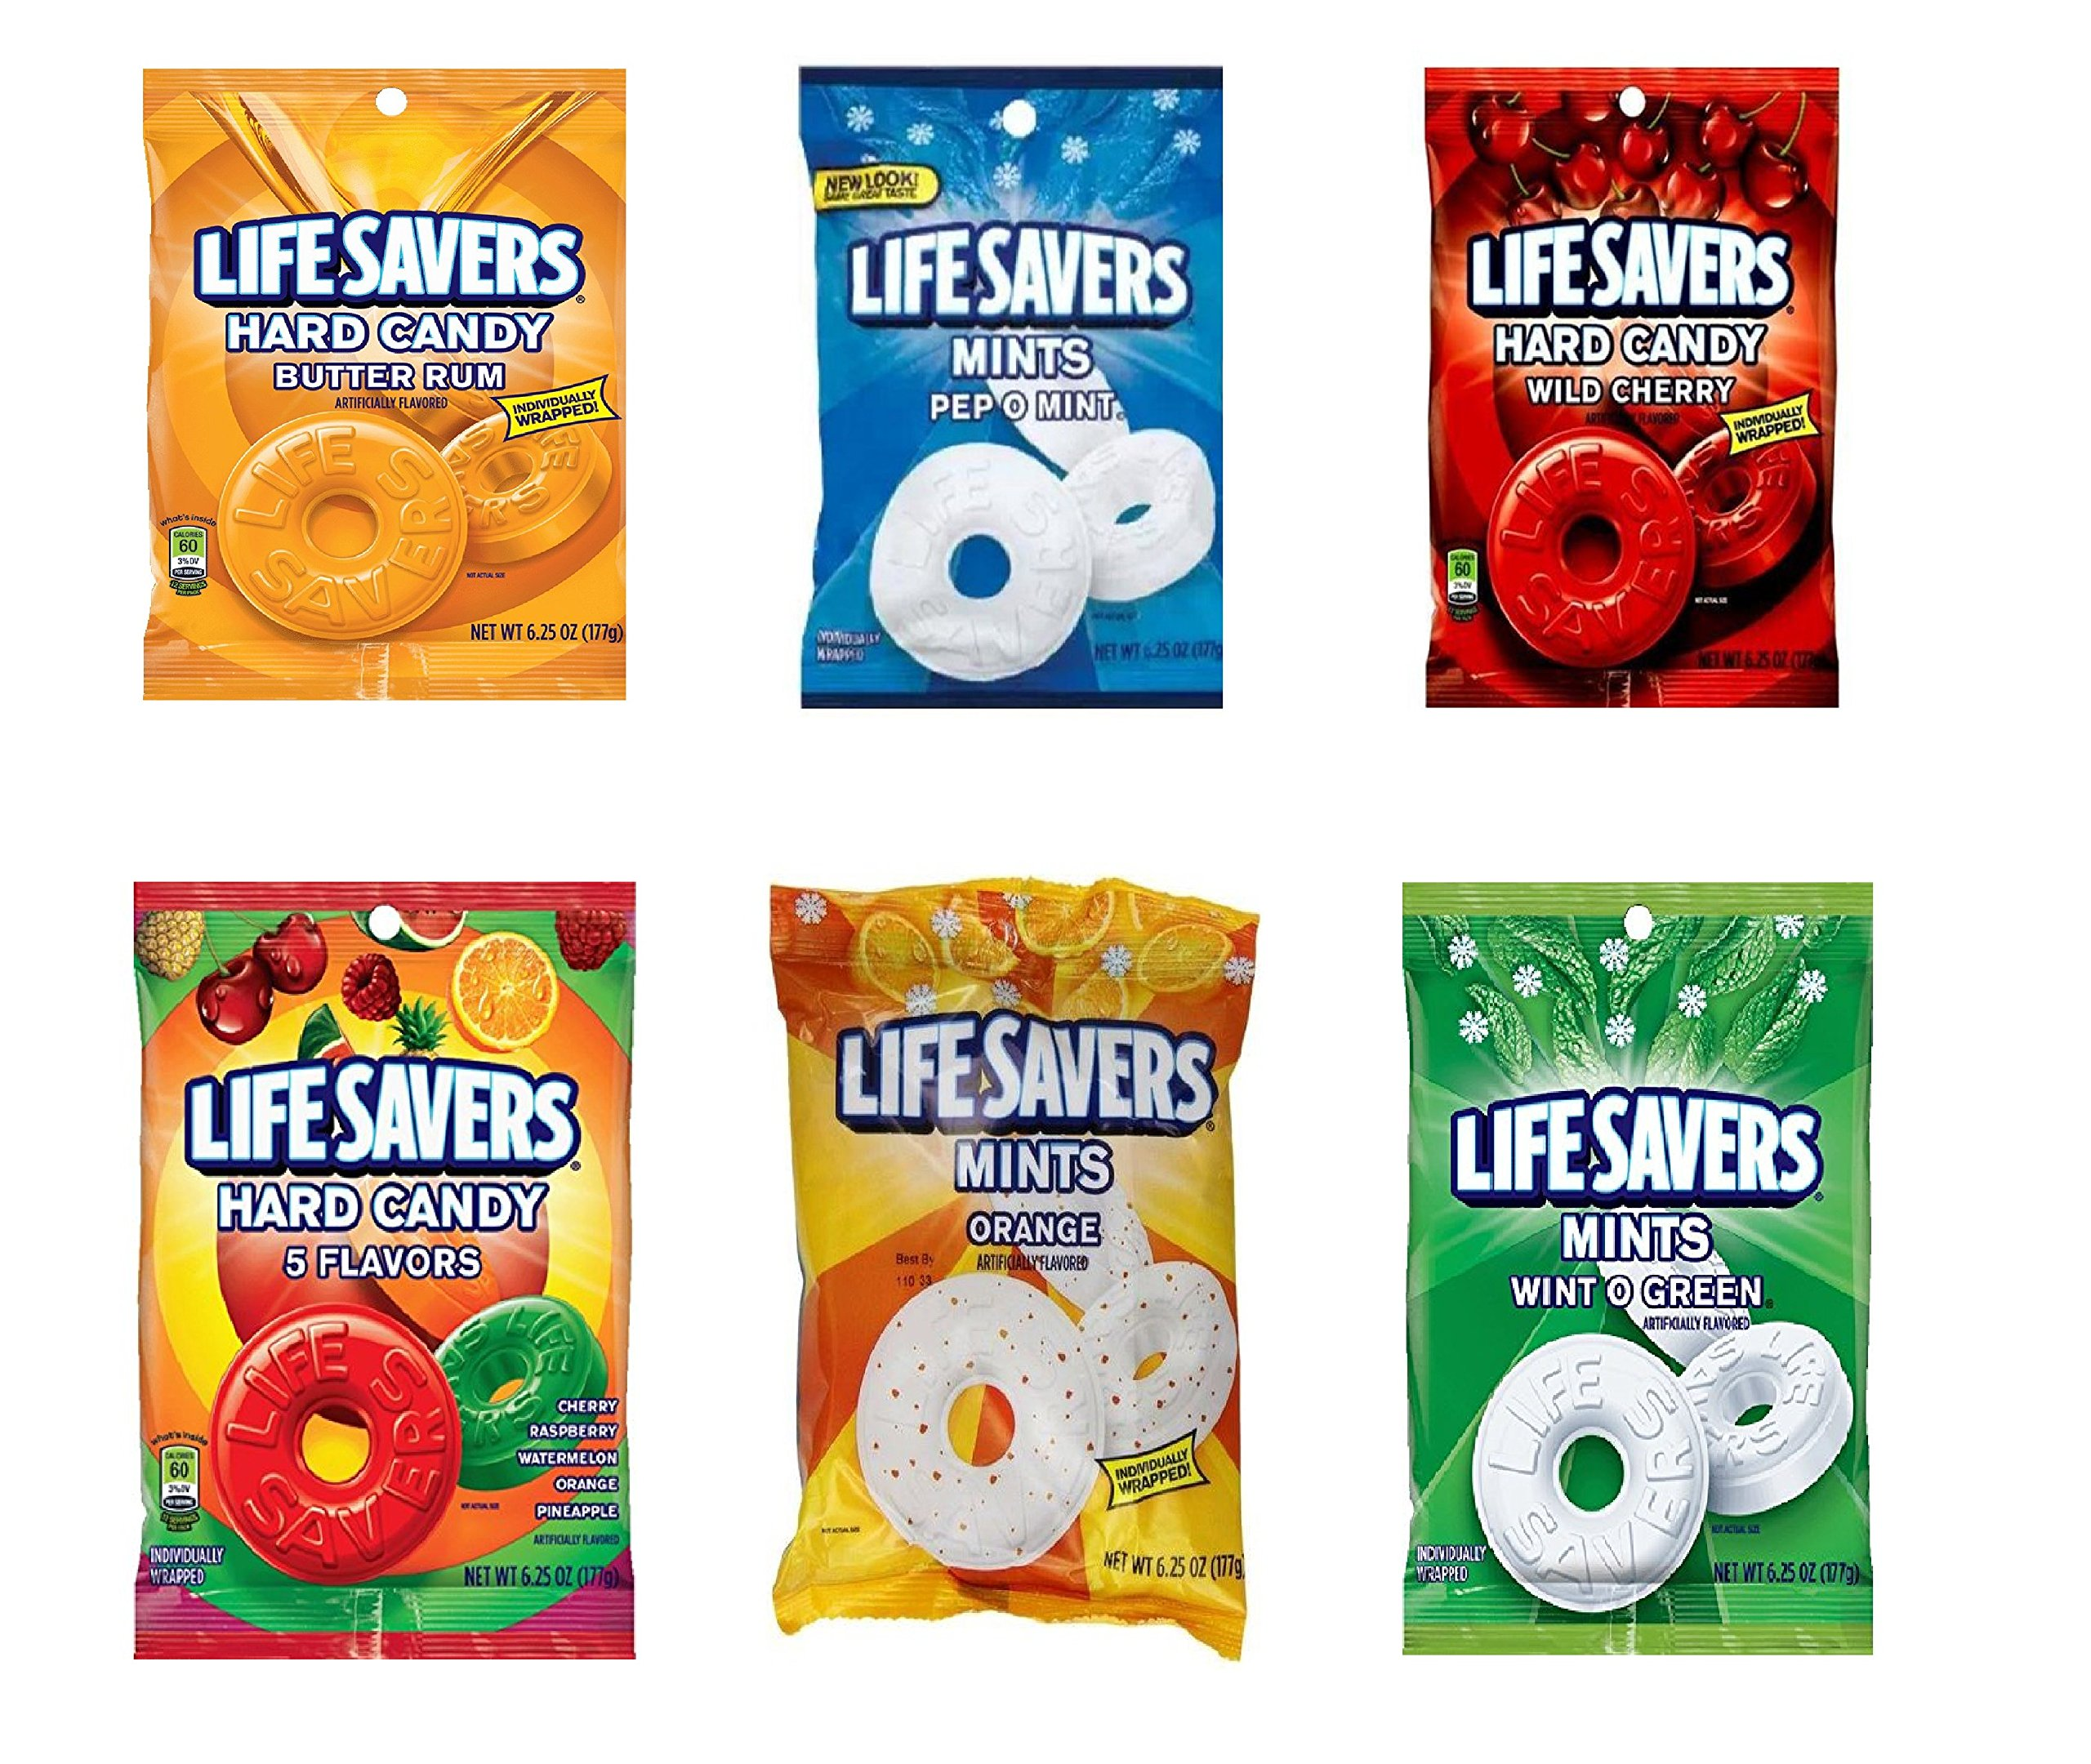 Life Savers Hard Candy, Individually Wrapped, Variety Pack - Butter Rum, Pep O